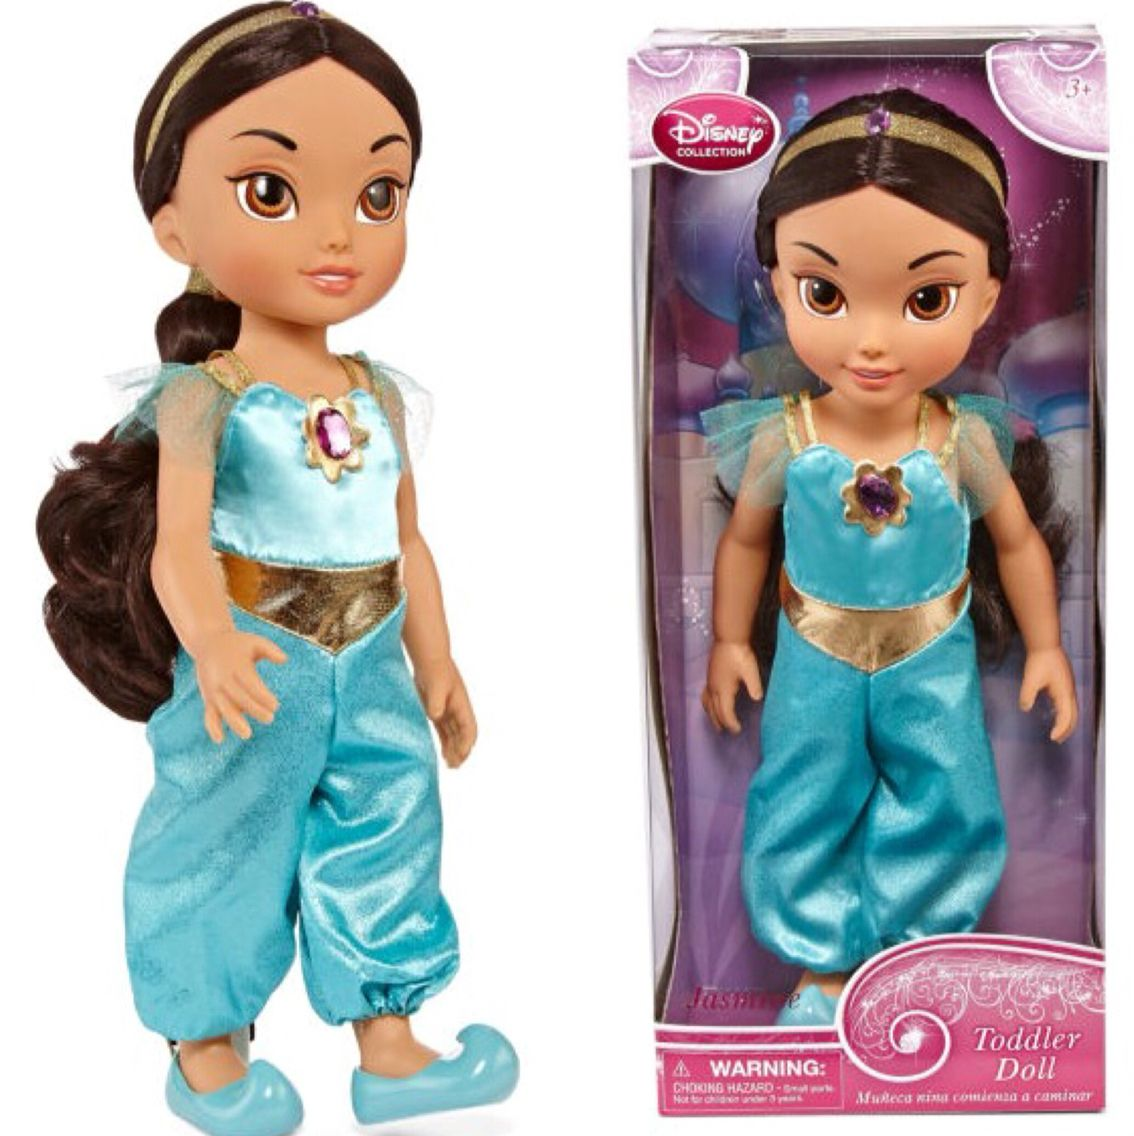 Jessica rabbit special edition doll by disney collectors dolls dark - Disney Collection Toddler Jasmine Doll From Jcpenney